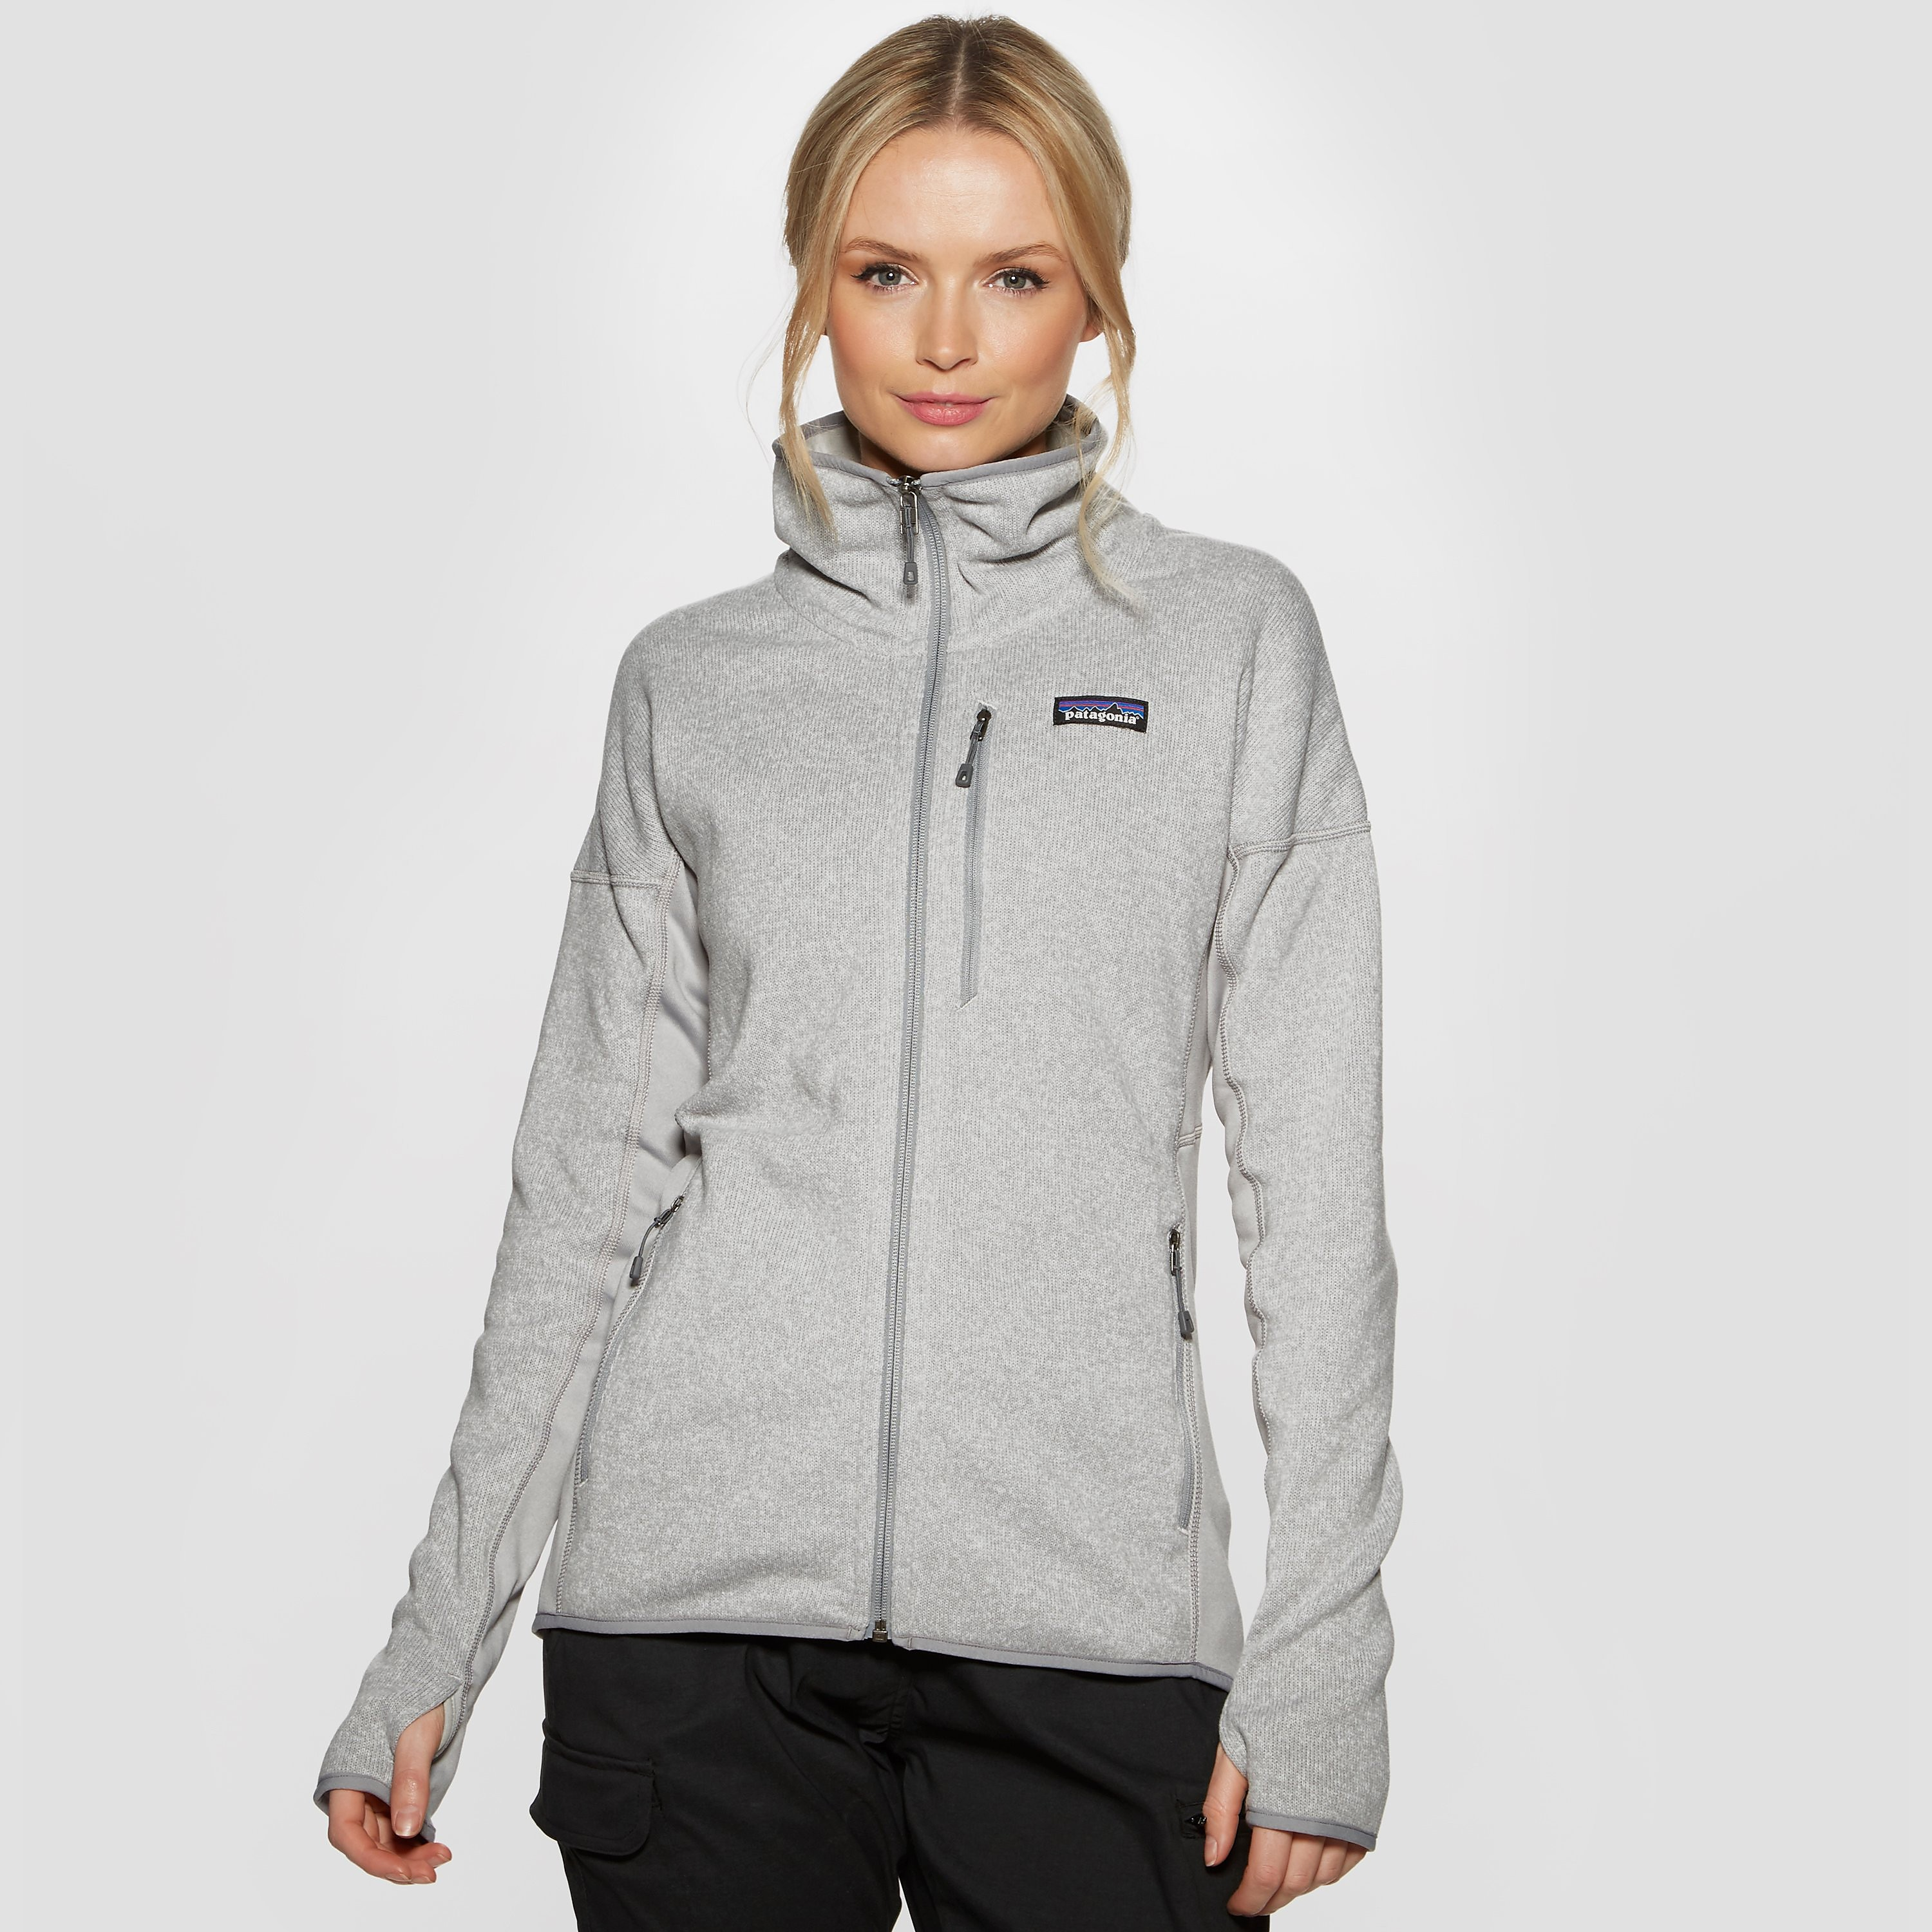 Patagonia Performance Better Sweater Women's Fleece Jacket